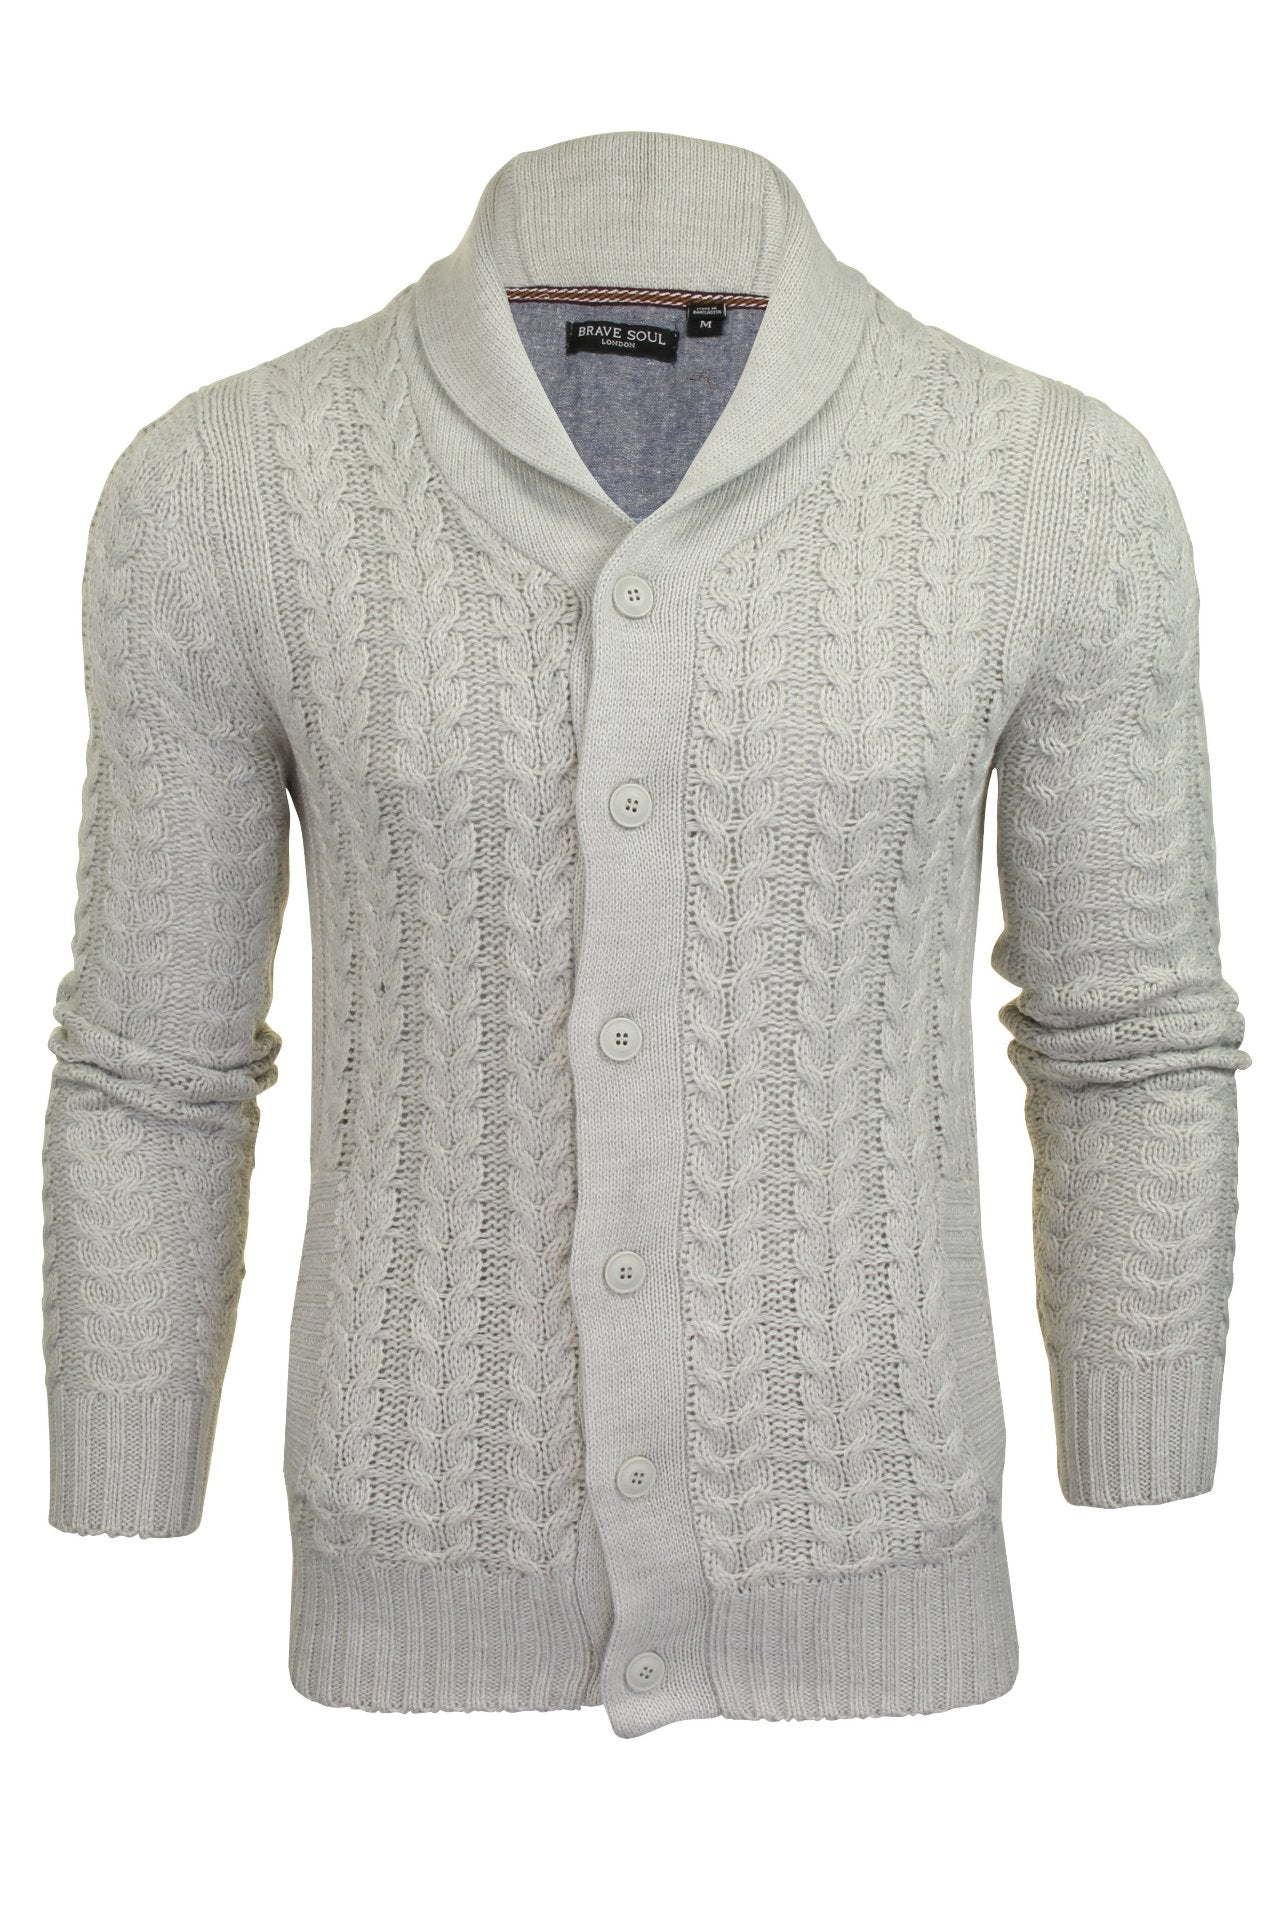 Brave Soul 'Schematic' Button Through Cardigan - All Over Knit Detail-Main Image